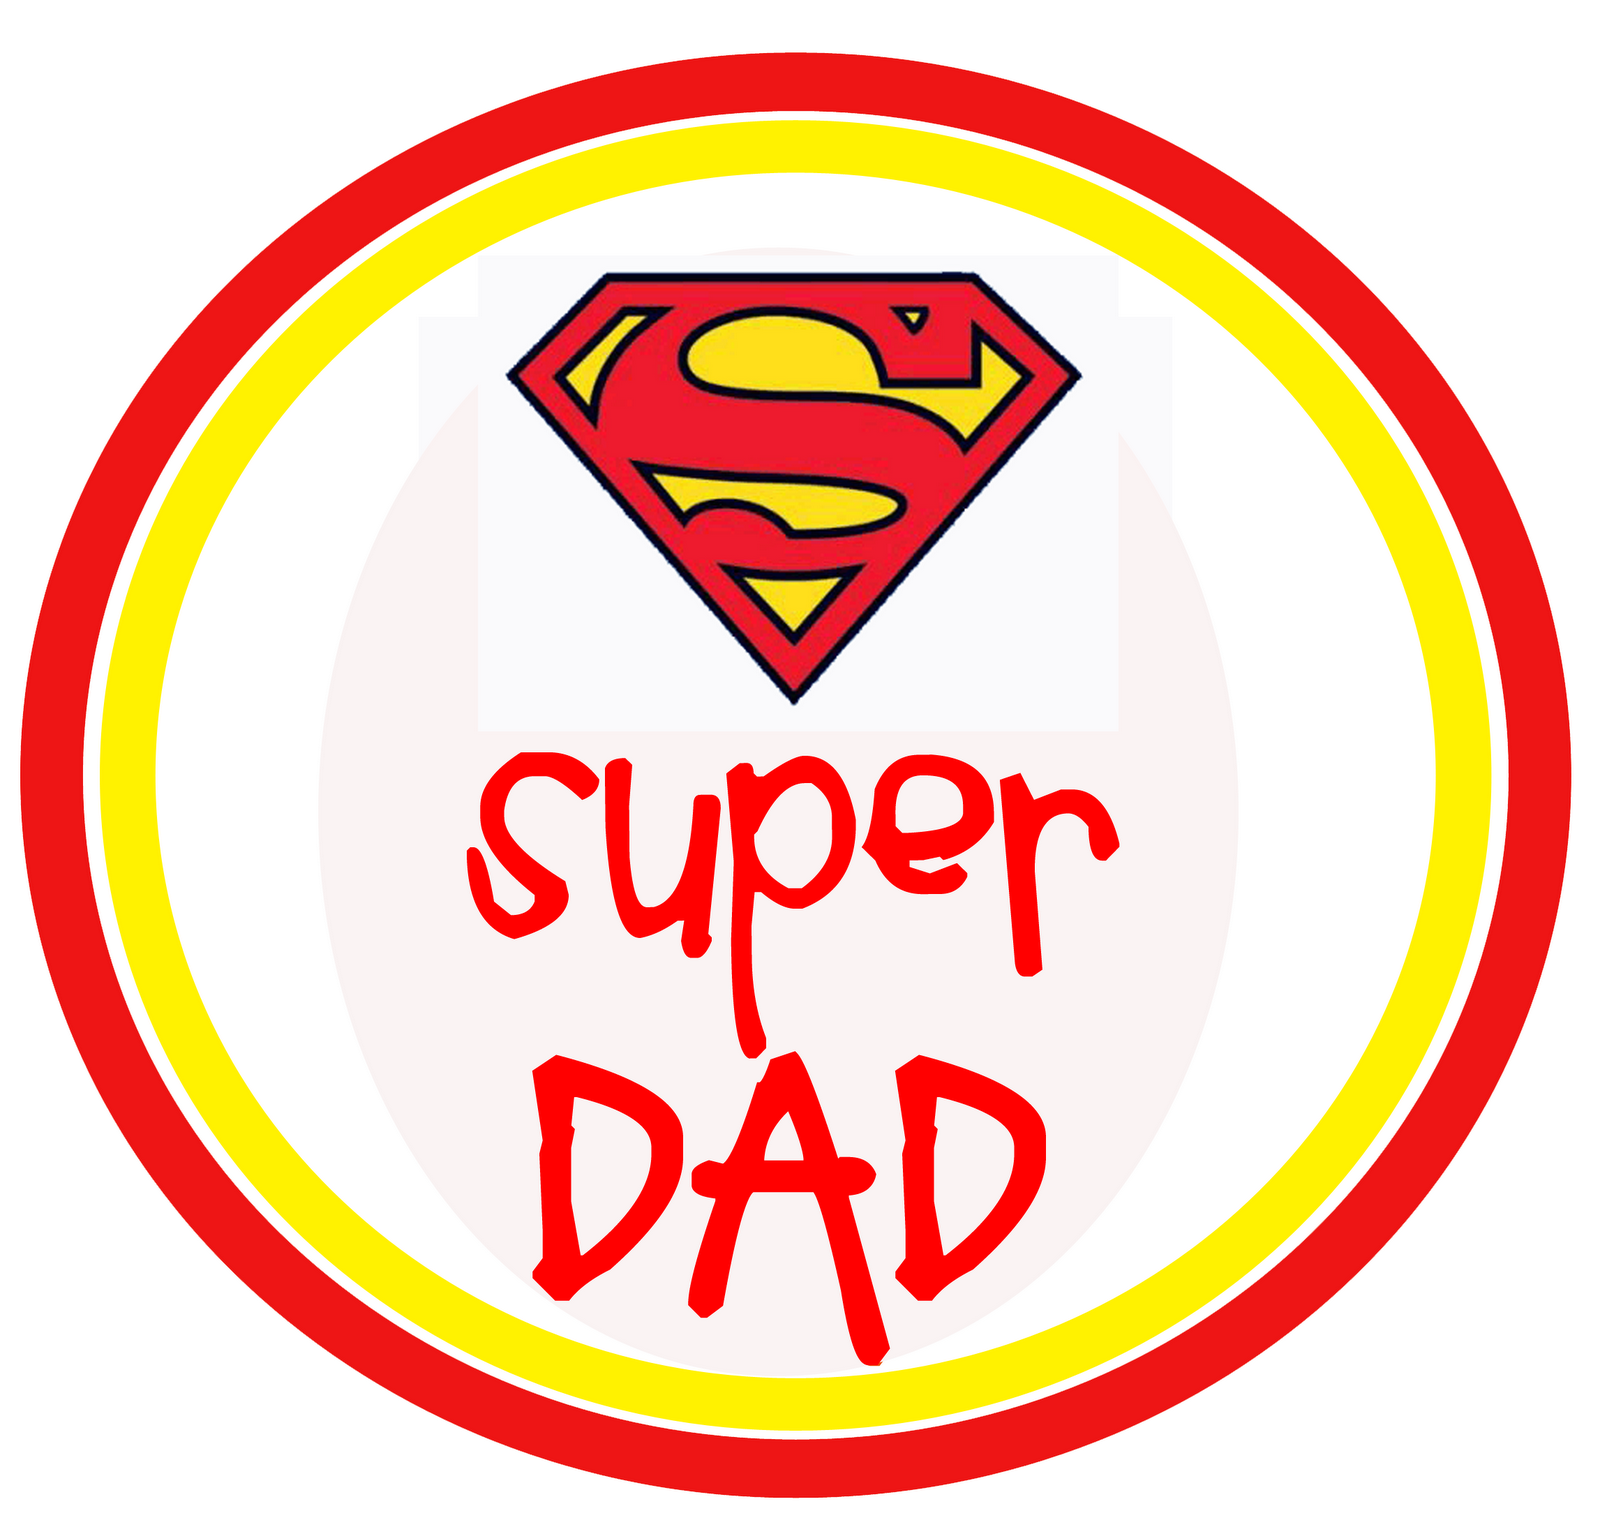 Fathers day free clip art father day clipart